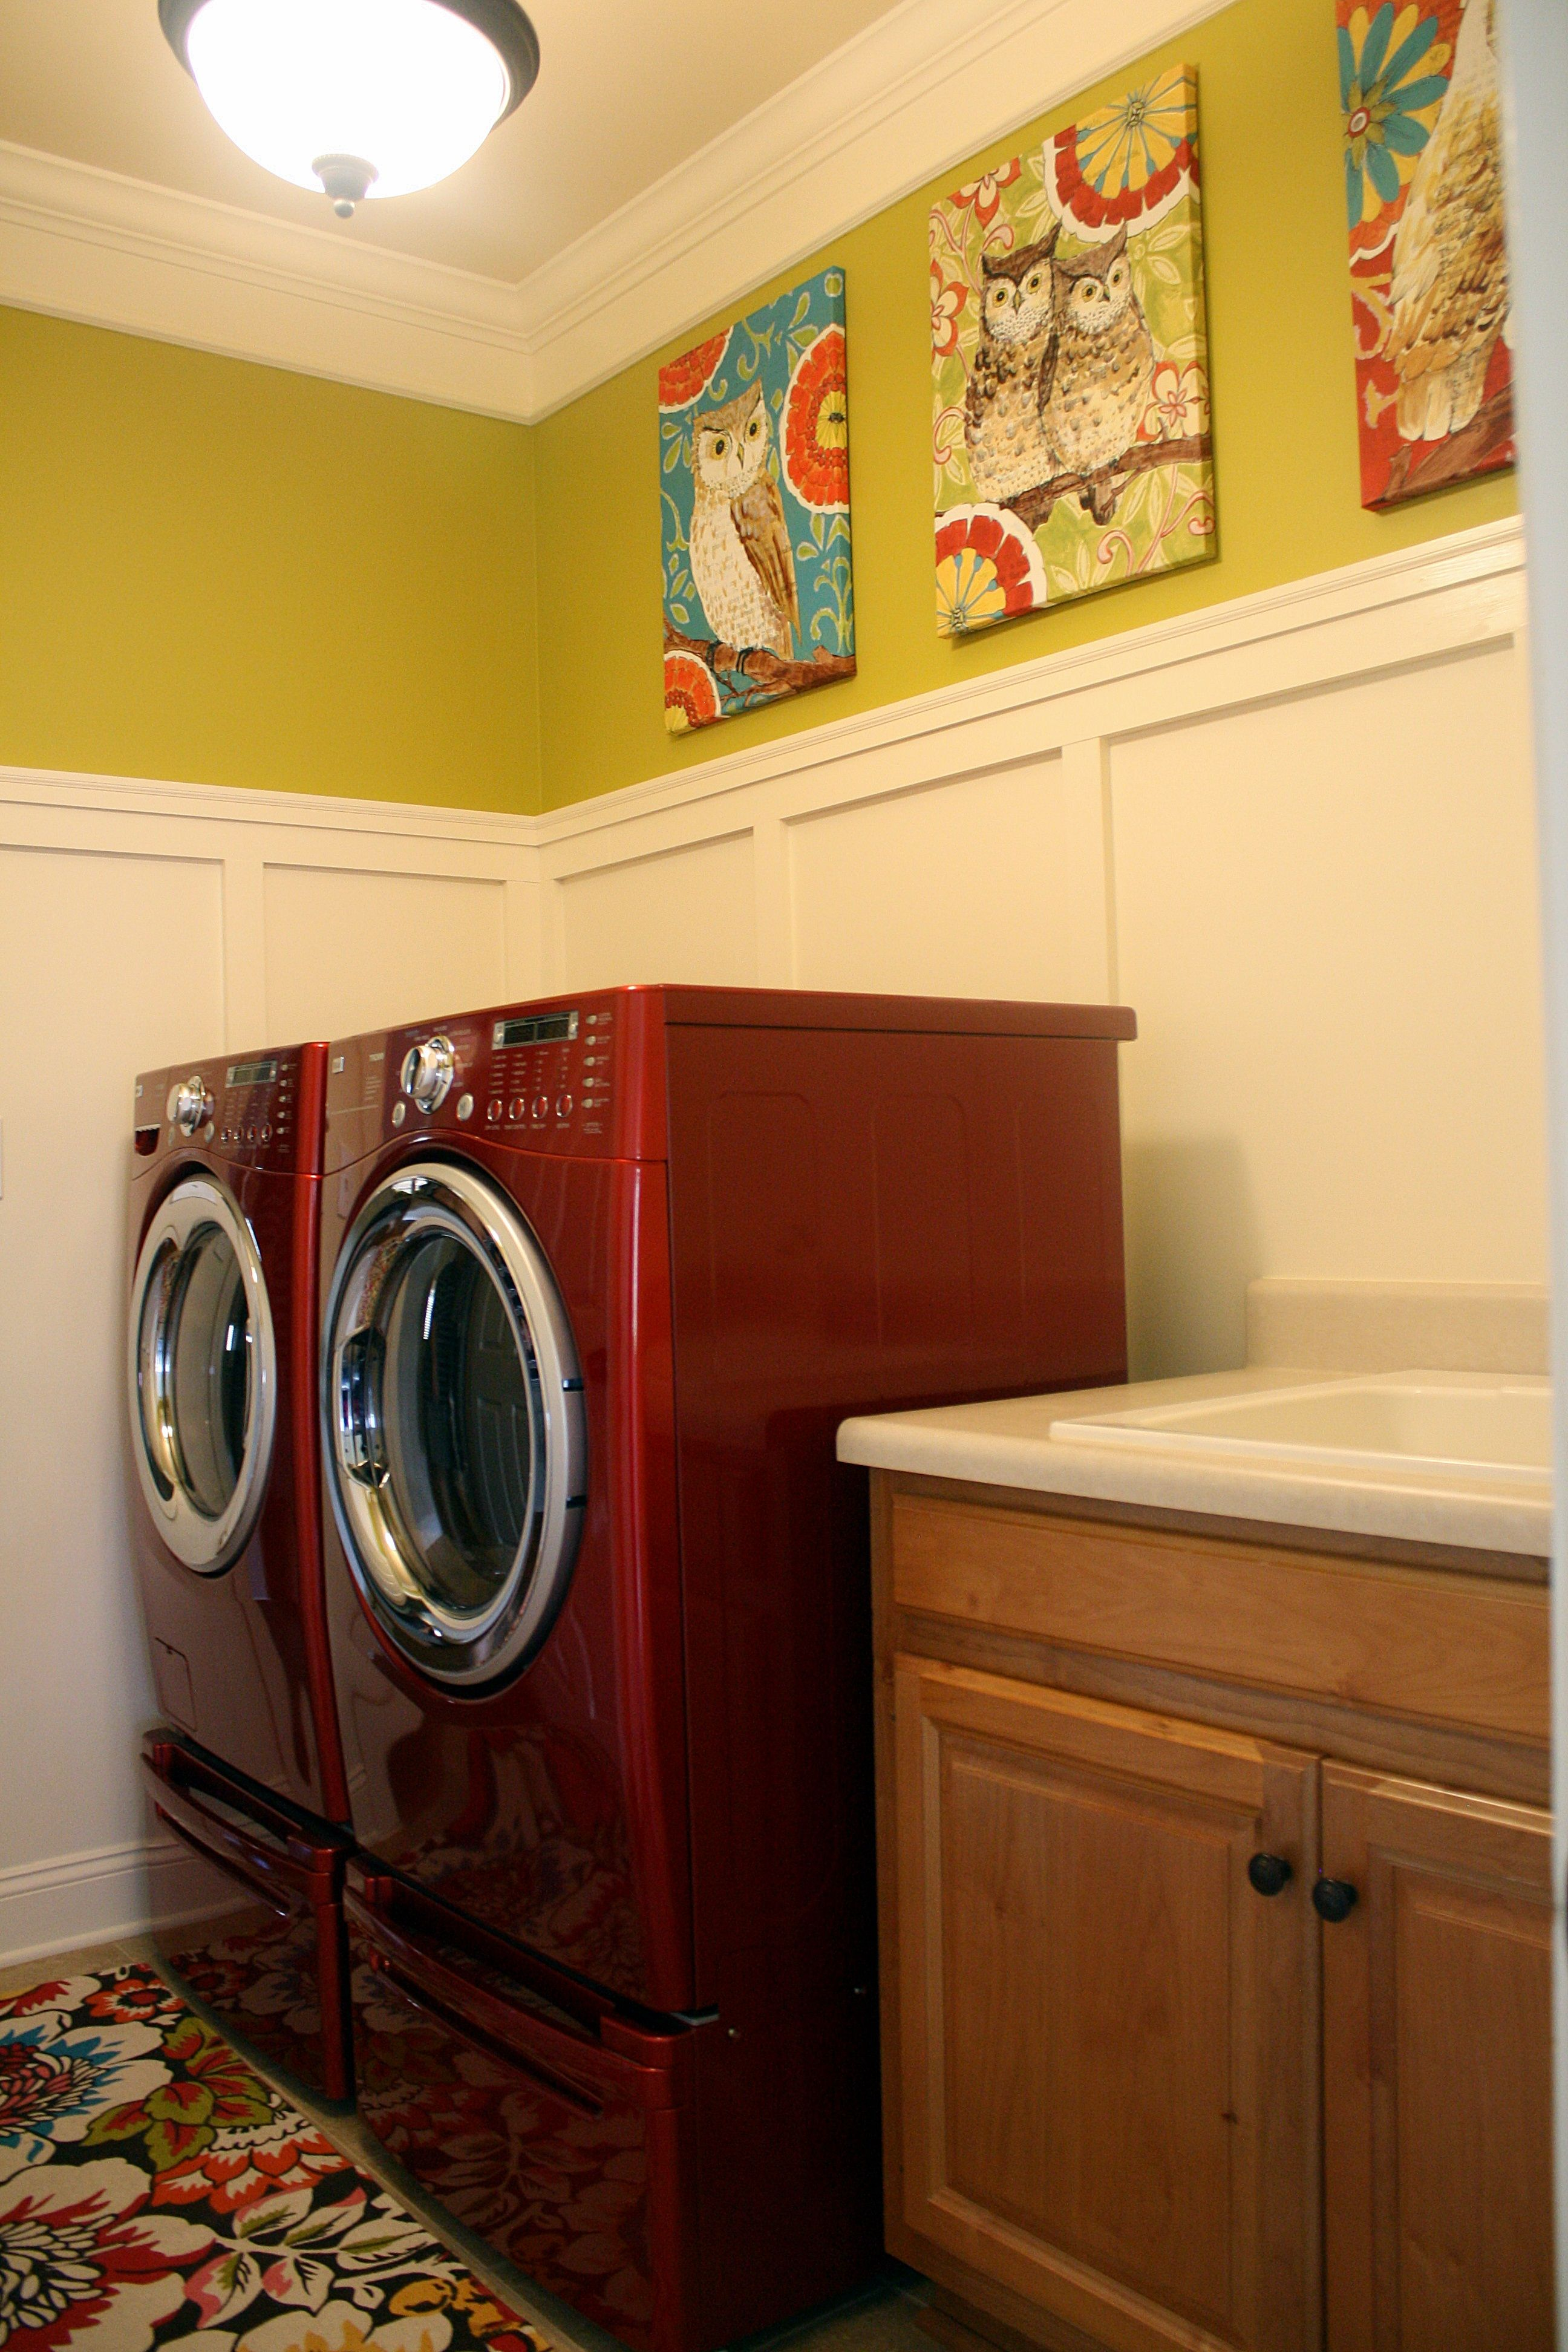 laundry room - paint color is Behr Ultra lemongrass | Our Bama Home ...